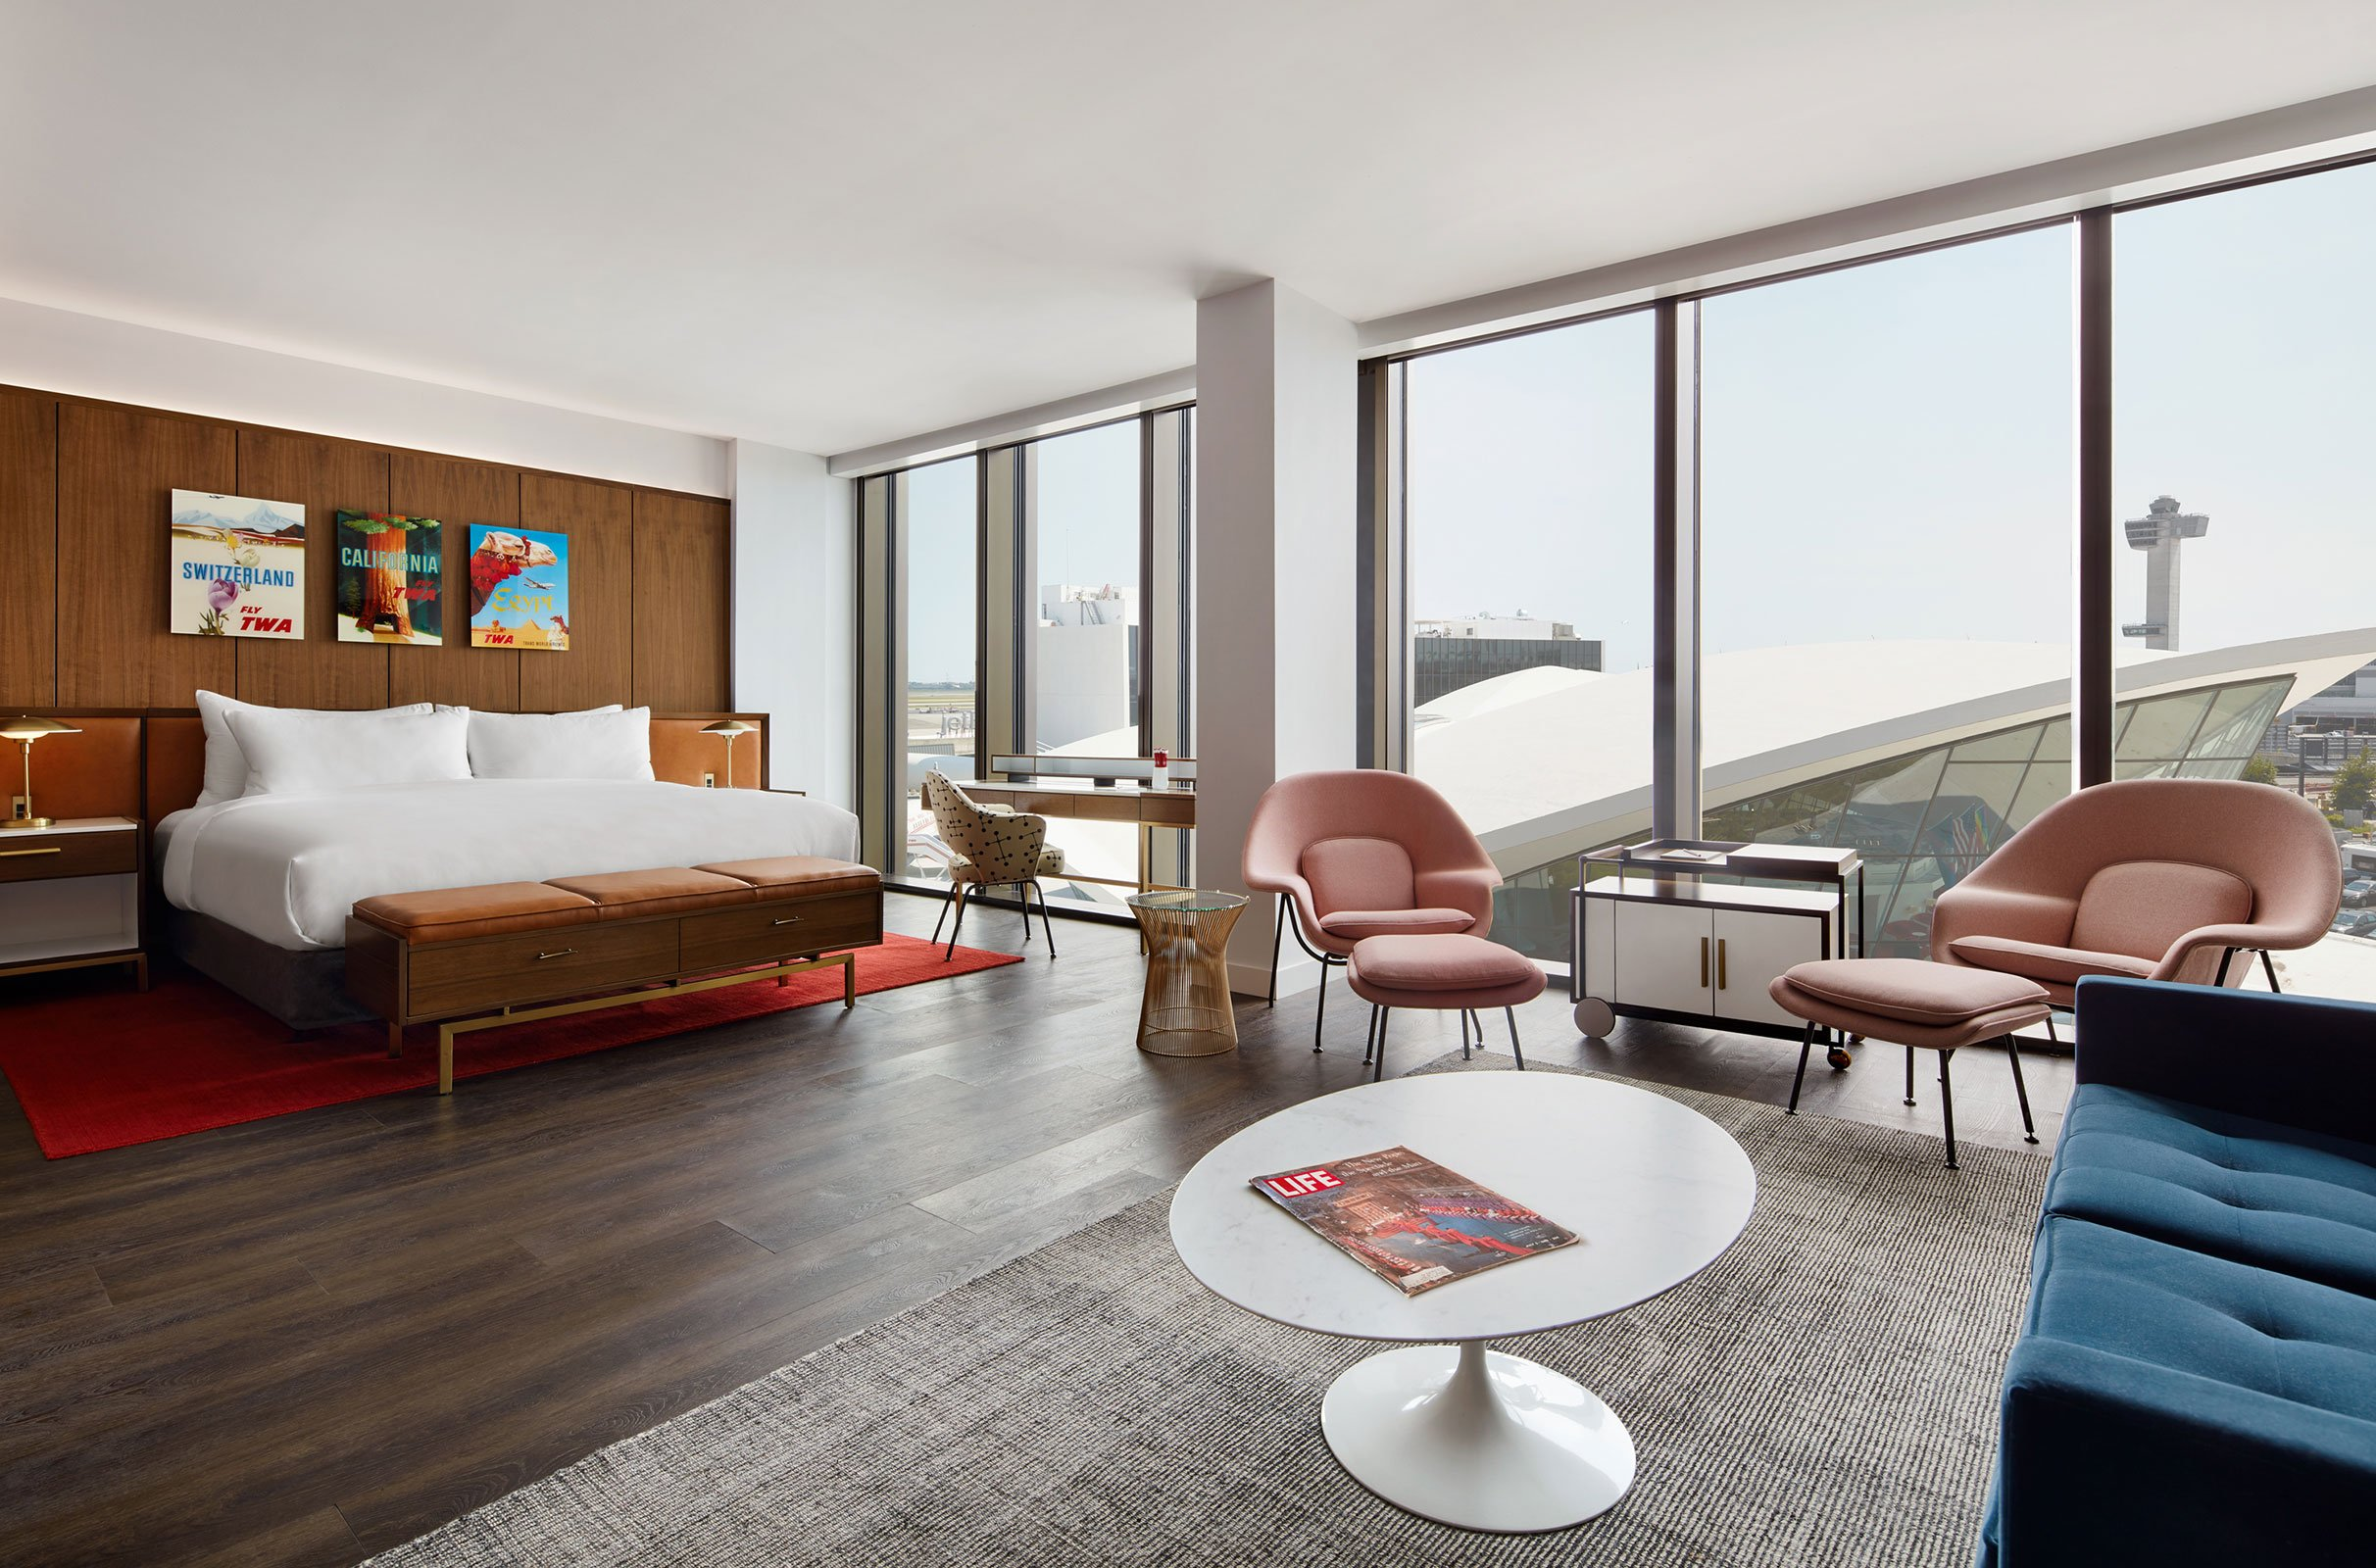 The Eero Saarinen Presidential Suite With Historic TWA View